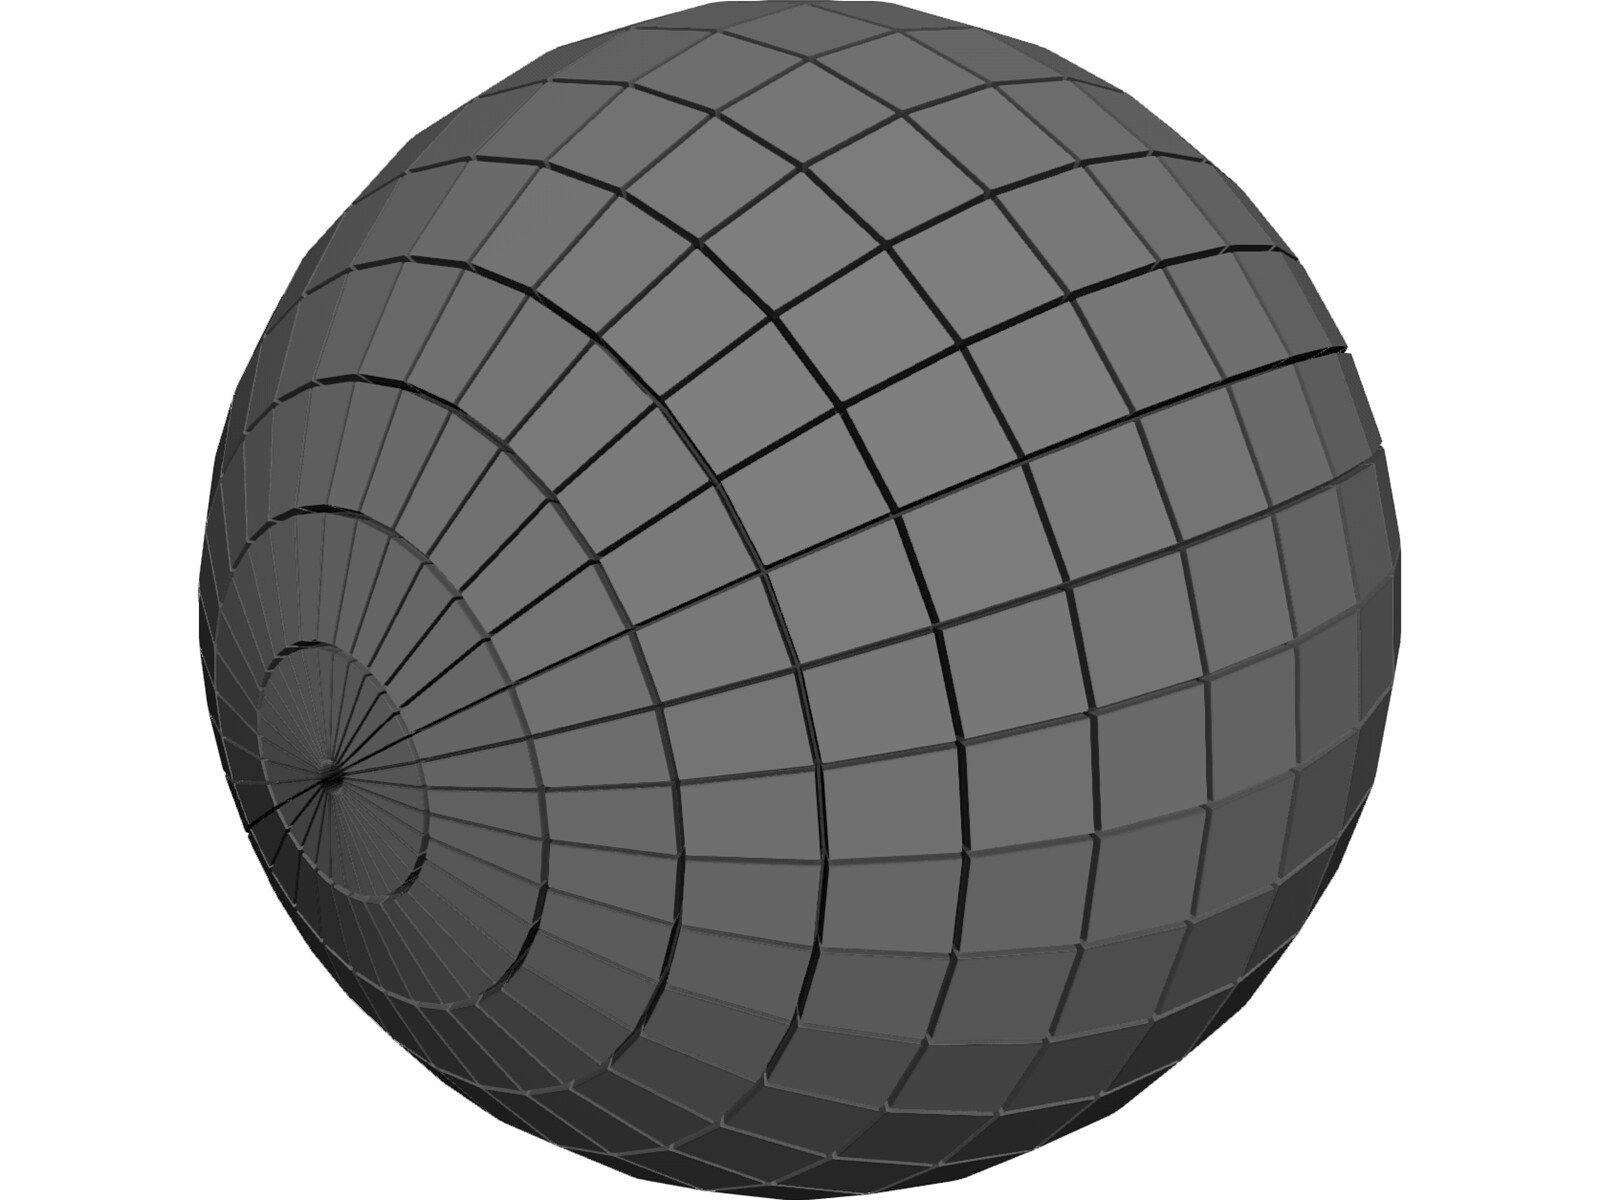 Discoball Mirrorball Free 3D Model - 3D CAD Browser